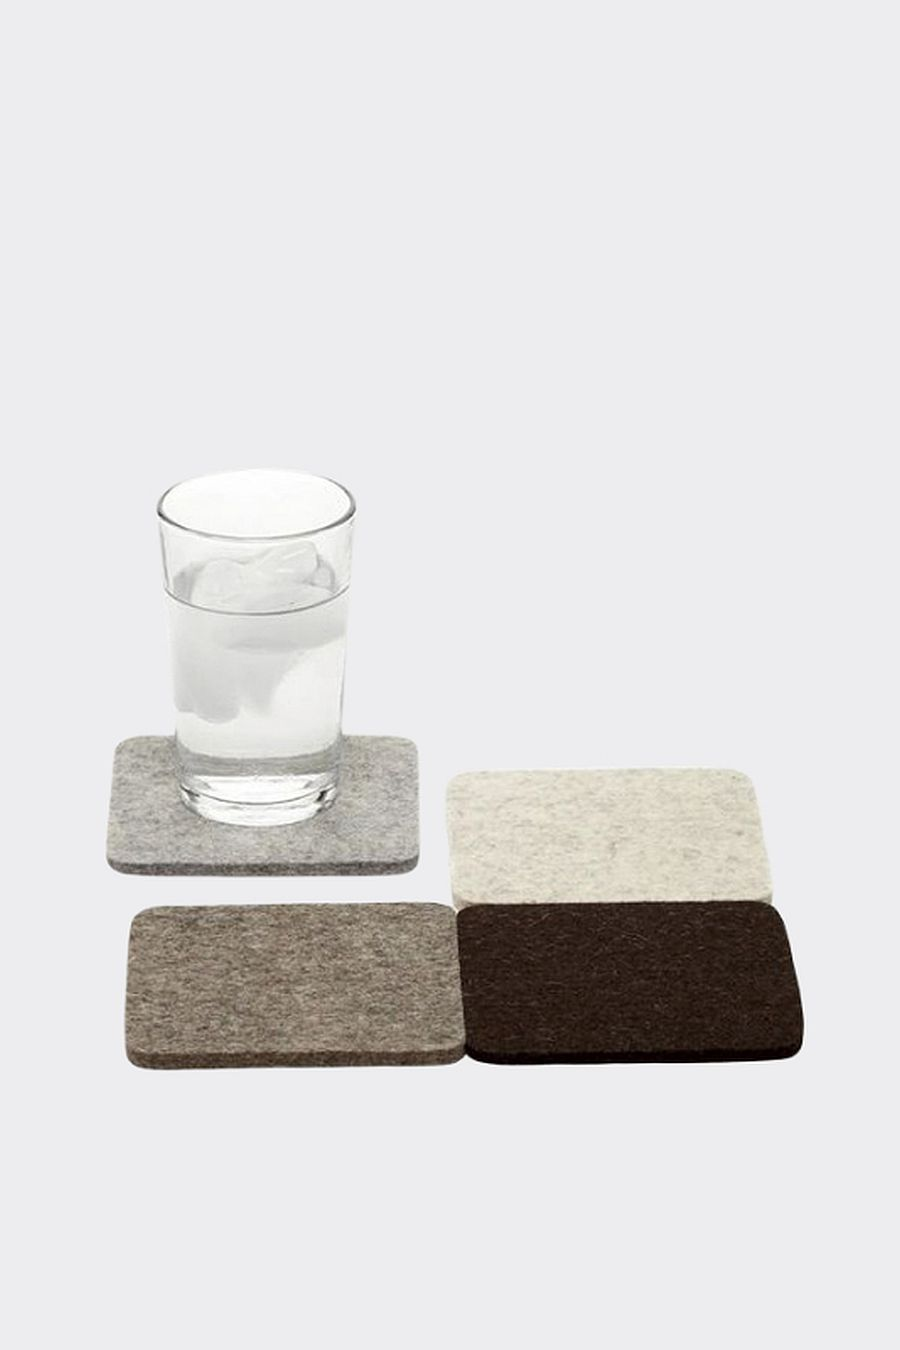 Graf Lantz Bierfilzl Square Felt Coaster - Earth